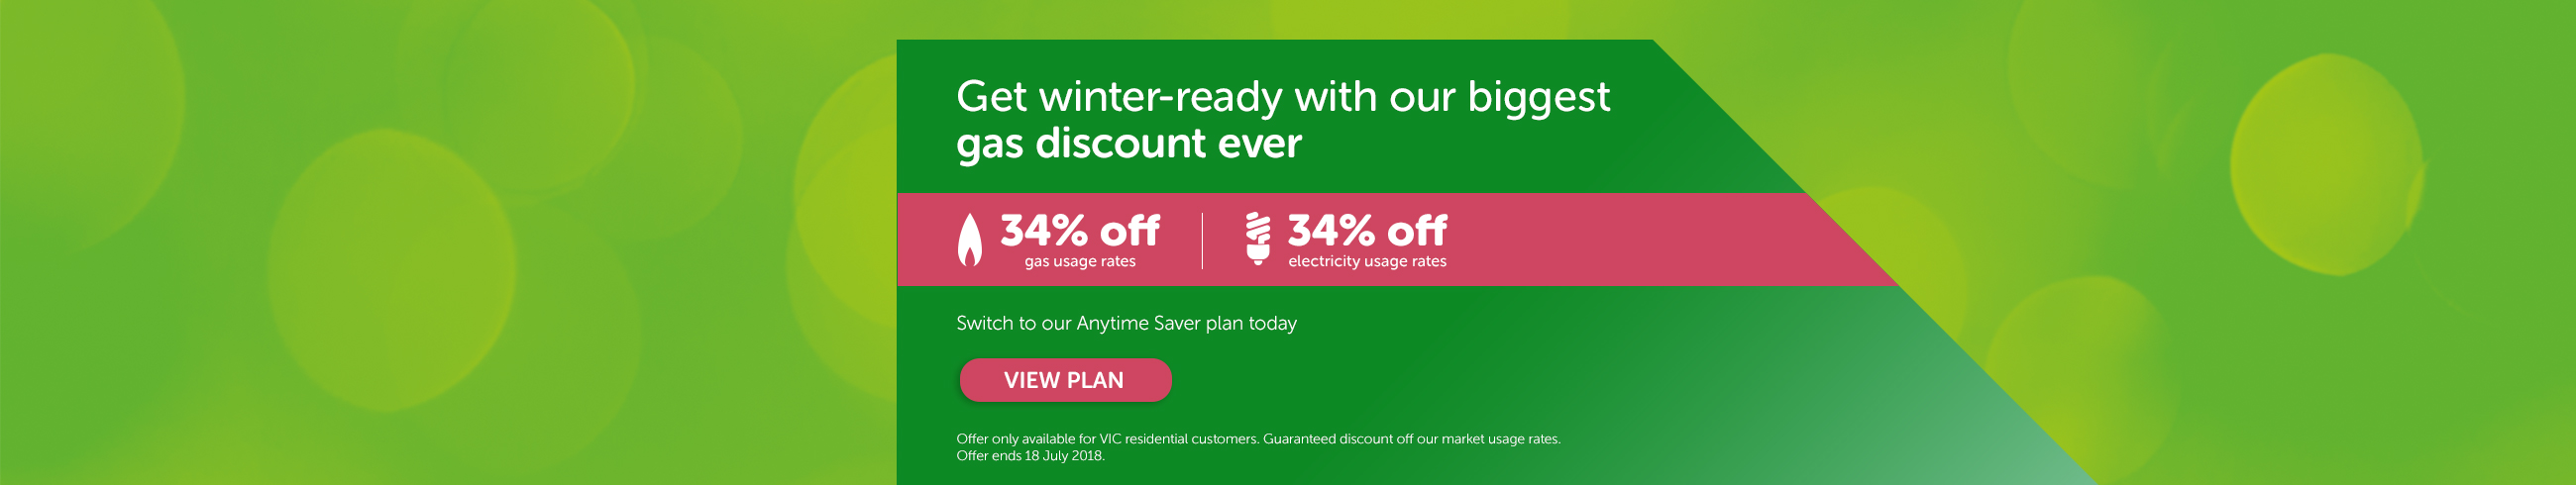 Get winter-ready with our biggest gas discount ever